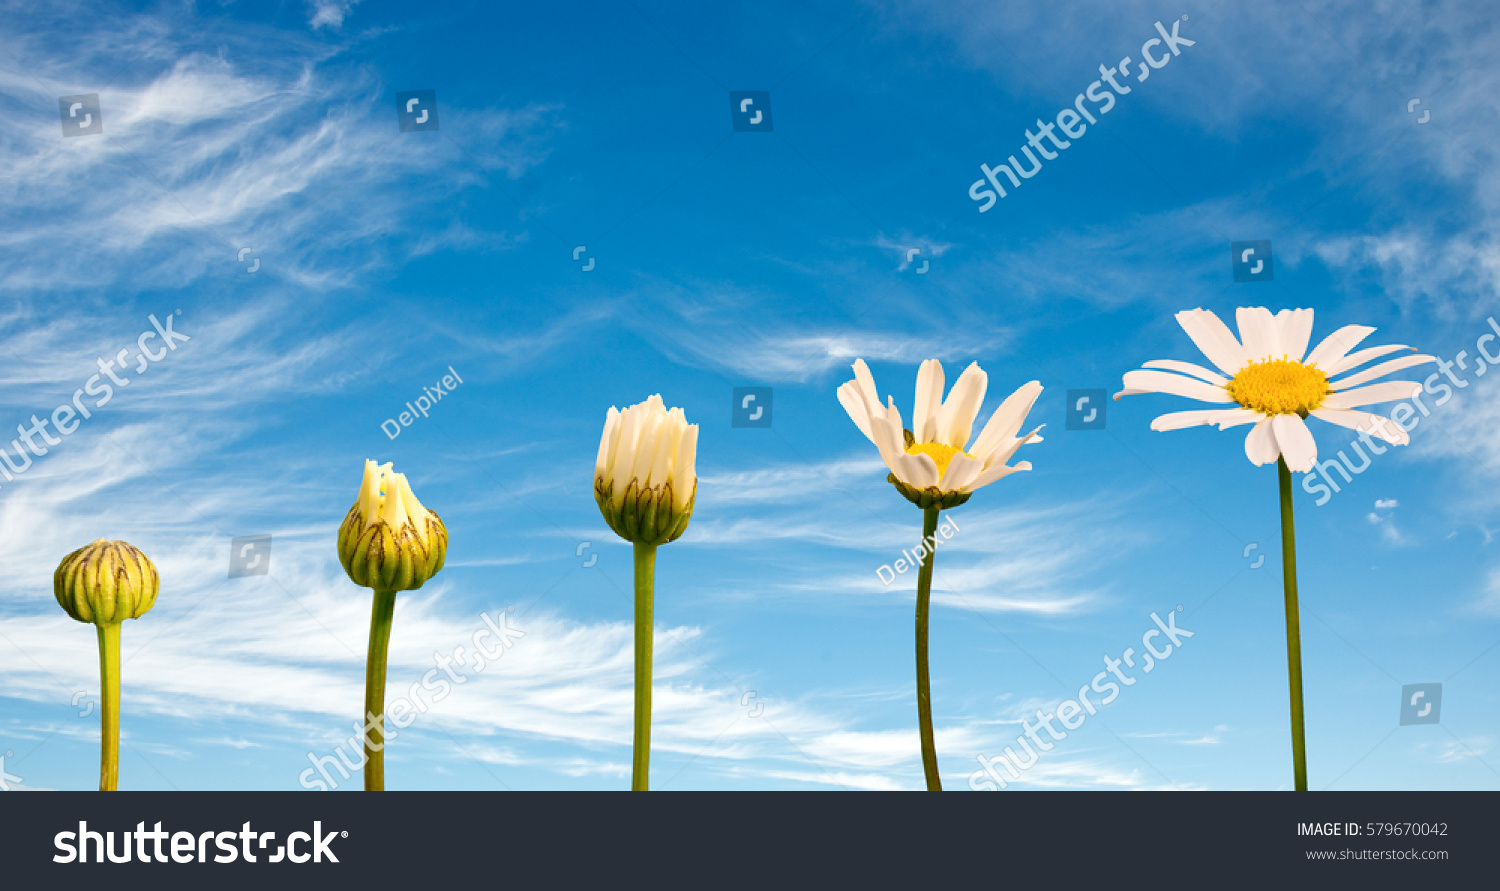 Stages of growth and flowering of a daisy, blue sky background, life concept #579670042